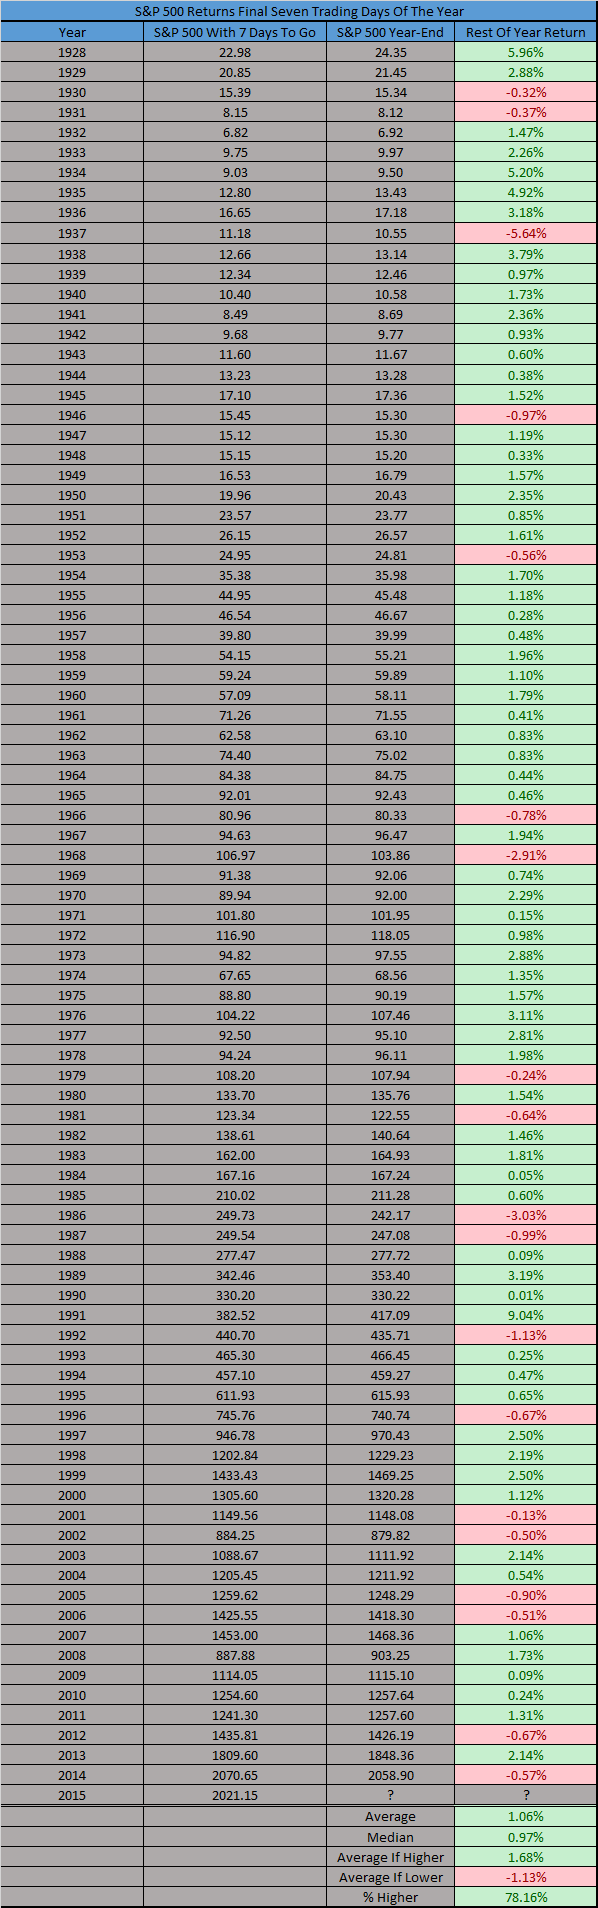 sp 500 returns last 7 days of year over history stock market